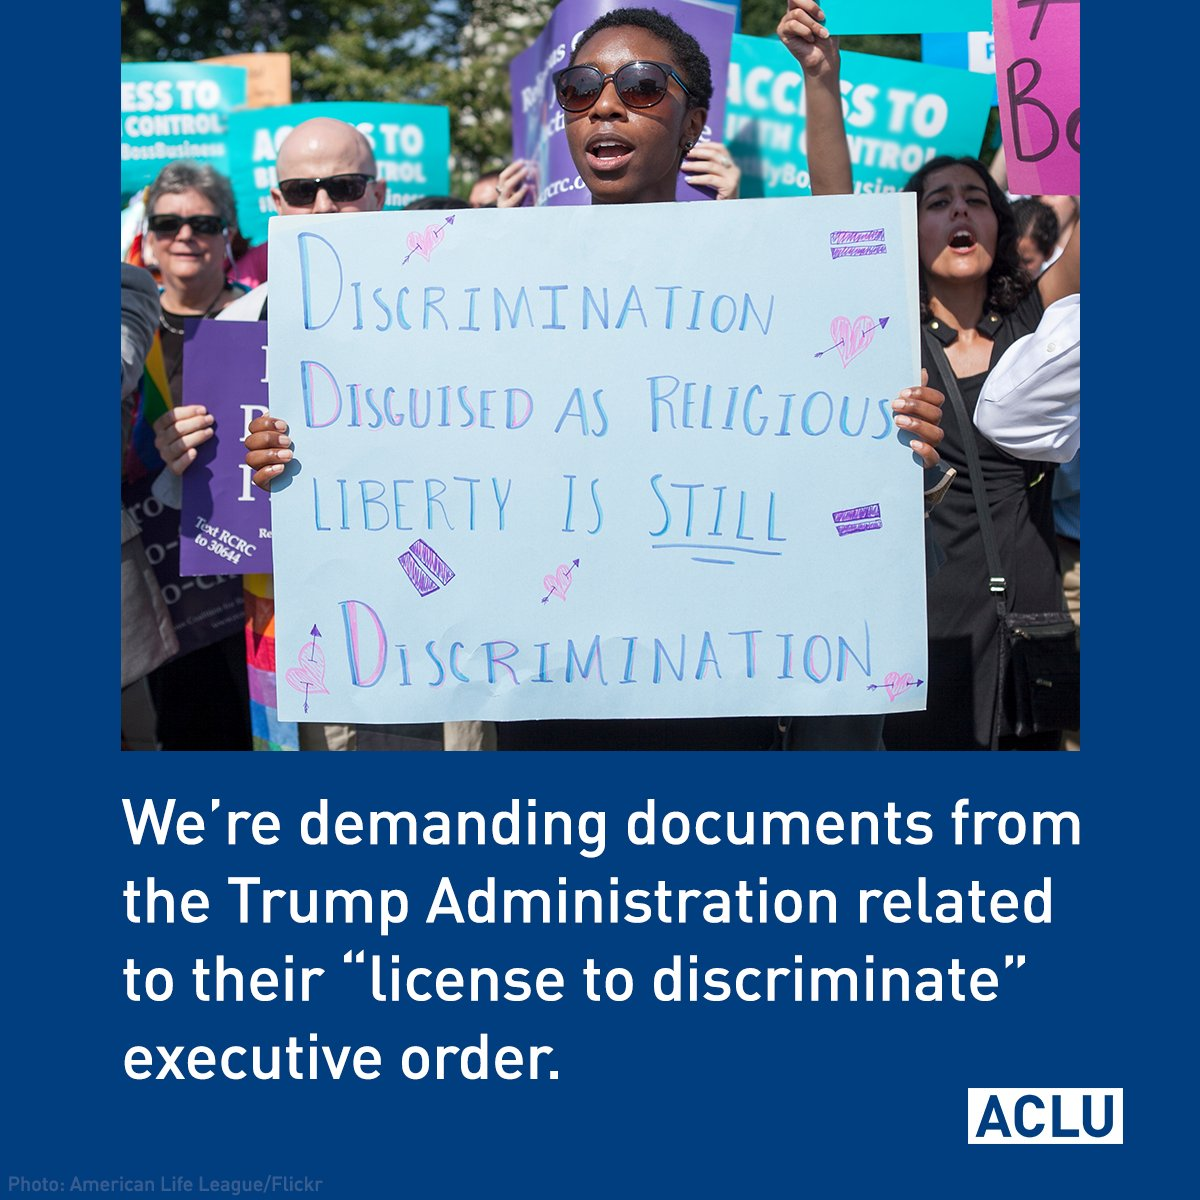 BREAKING: We just filed a lawsuit demanding documents related to the Trump admin's plans to sanction discrimination in the name of religion.